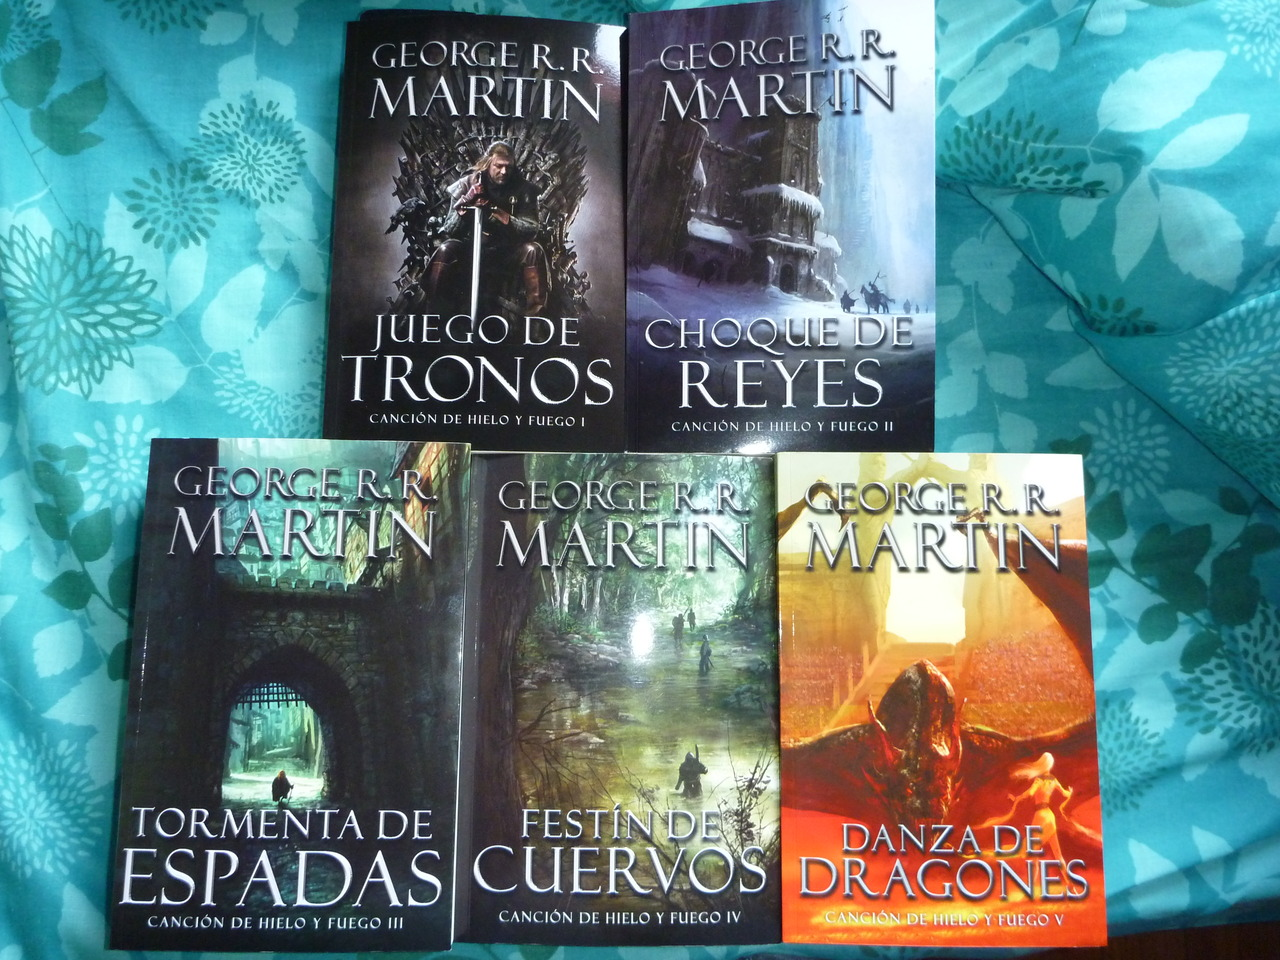 George Rr Martin Libros Game Of Thrones Game Of Thrones Entrevista 1999 De George R R Martin